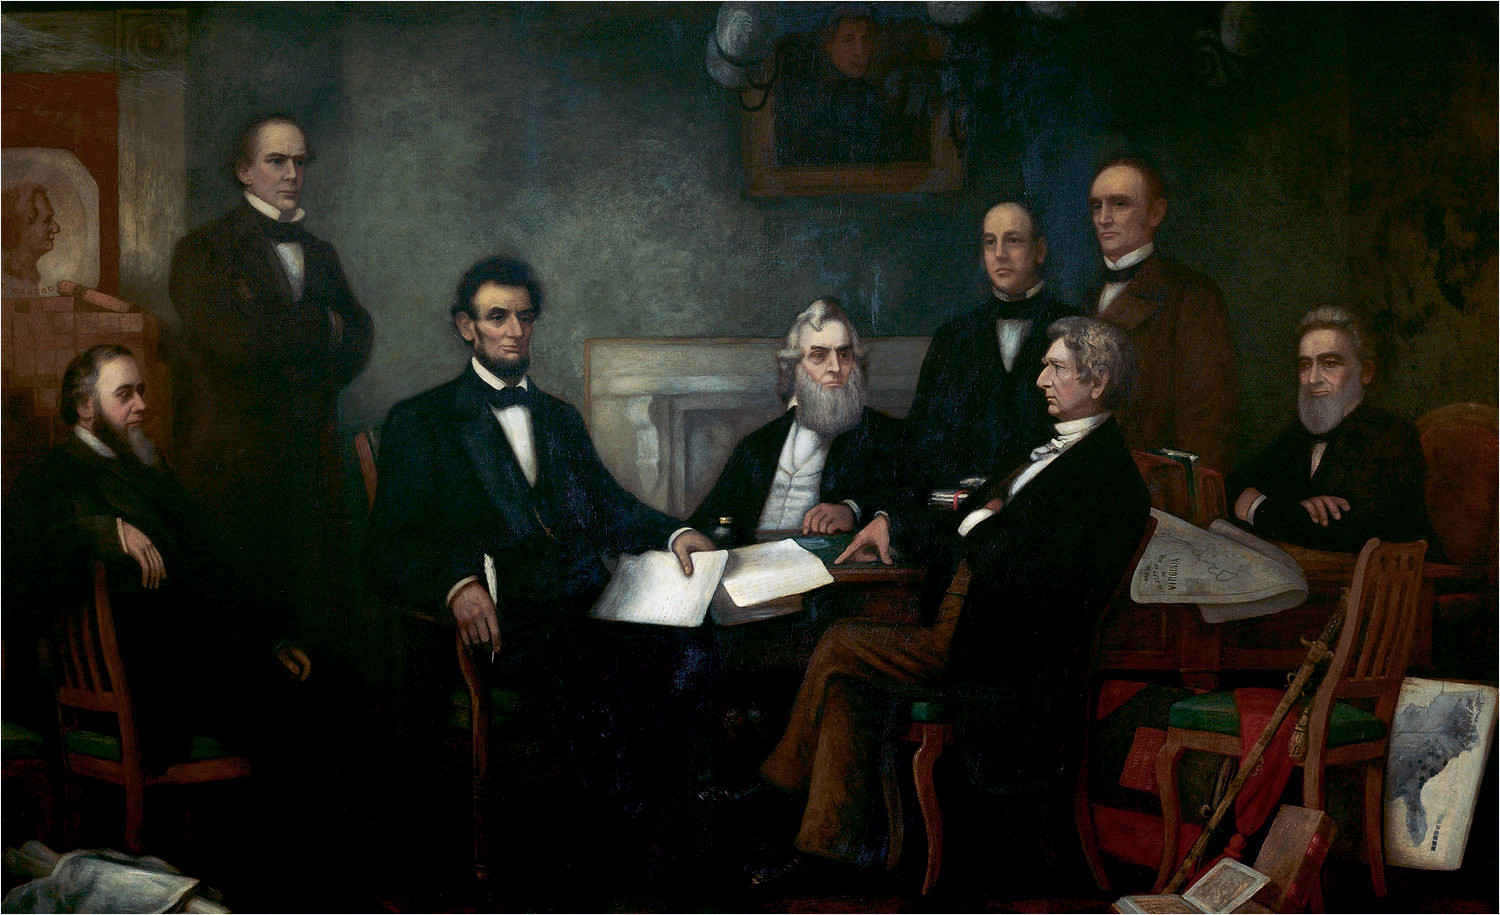 'First Reading of the Emancipation Proclamation by President Lincoln' by Francis Bicknell Carpenter (1830–1900), painted in 1864. Shown from left to right are: Edwin M. Stanton, Secretary of War (seated); Salmon P. Chase, Secretary of the Treasury (standing); Abraham Lincoln, President of the United States; Gideon Welles, Secretary of the Navy (seated); Caleb Blood Smith, Secretary of the Interior (standing); William H. Seward, Secretary of State (seated); Montgomery Blair, Postmaster General (standing); Edward Bates, Attorney General (seated). Also shown are: Andrew Jackson, former President (painting center); Simon Cameron, former Secretary of War (painting left).